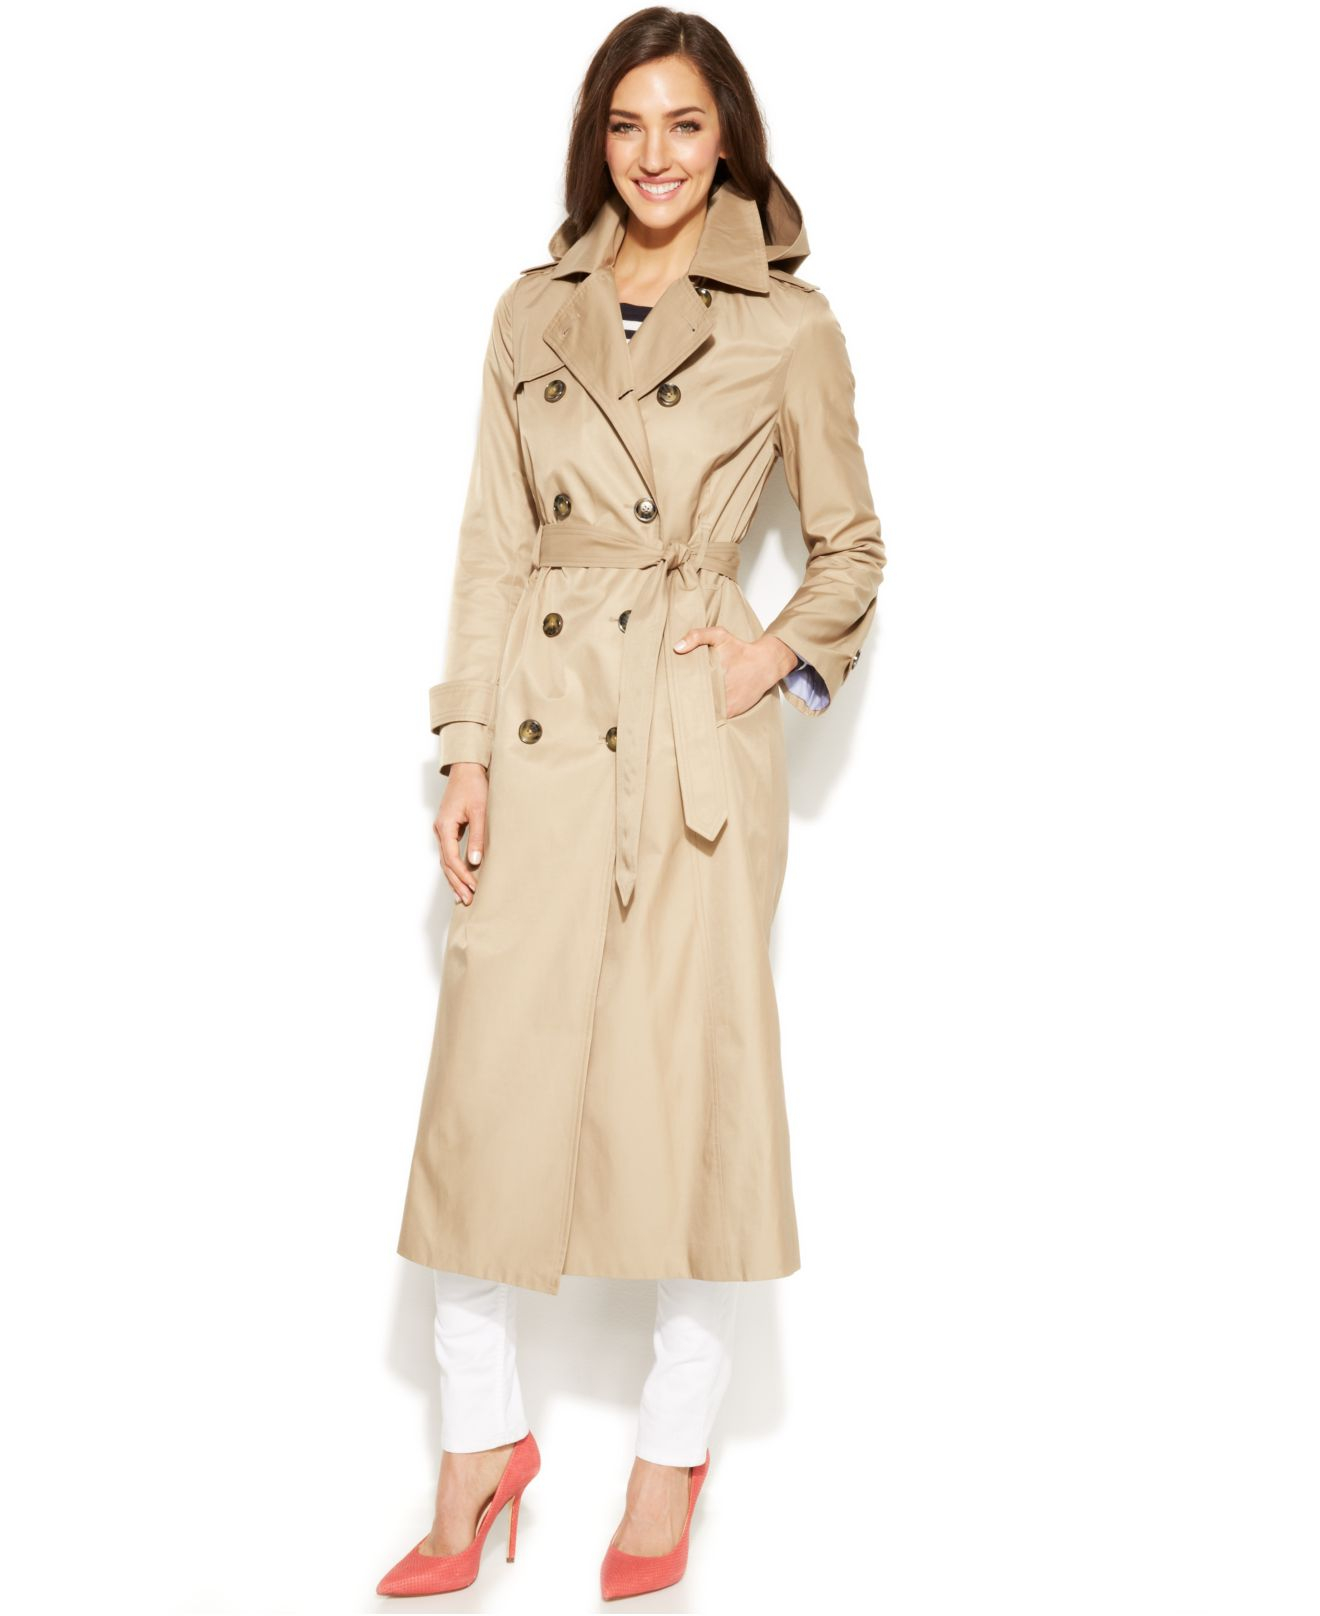 d85d03c6f87 Lyst - London Fog Hooded Double-Breasted Maxi Trench Coat in Natural